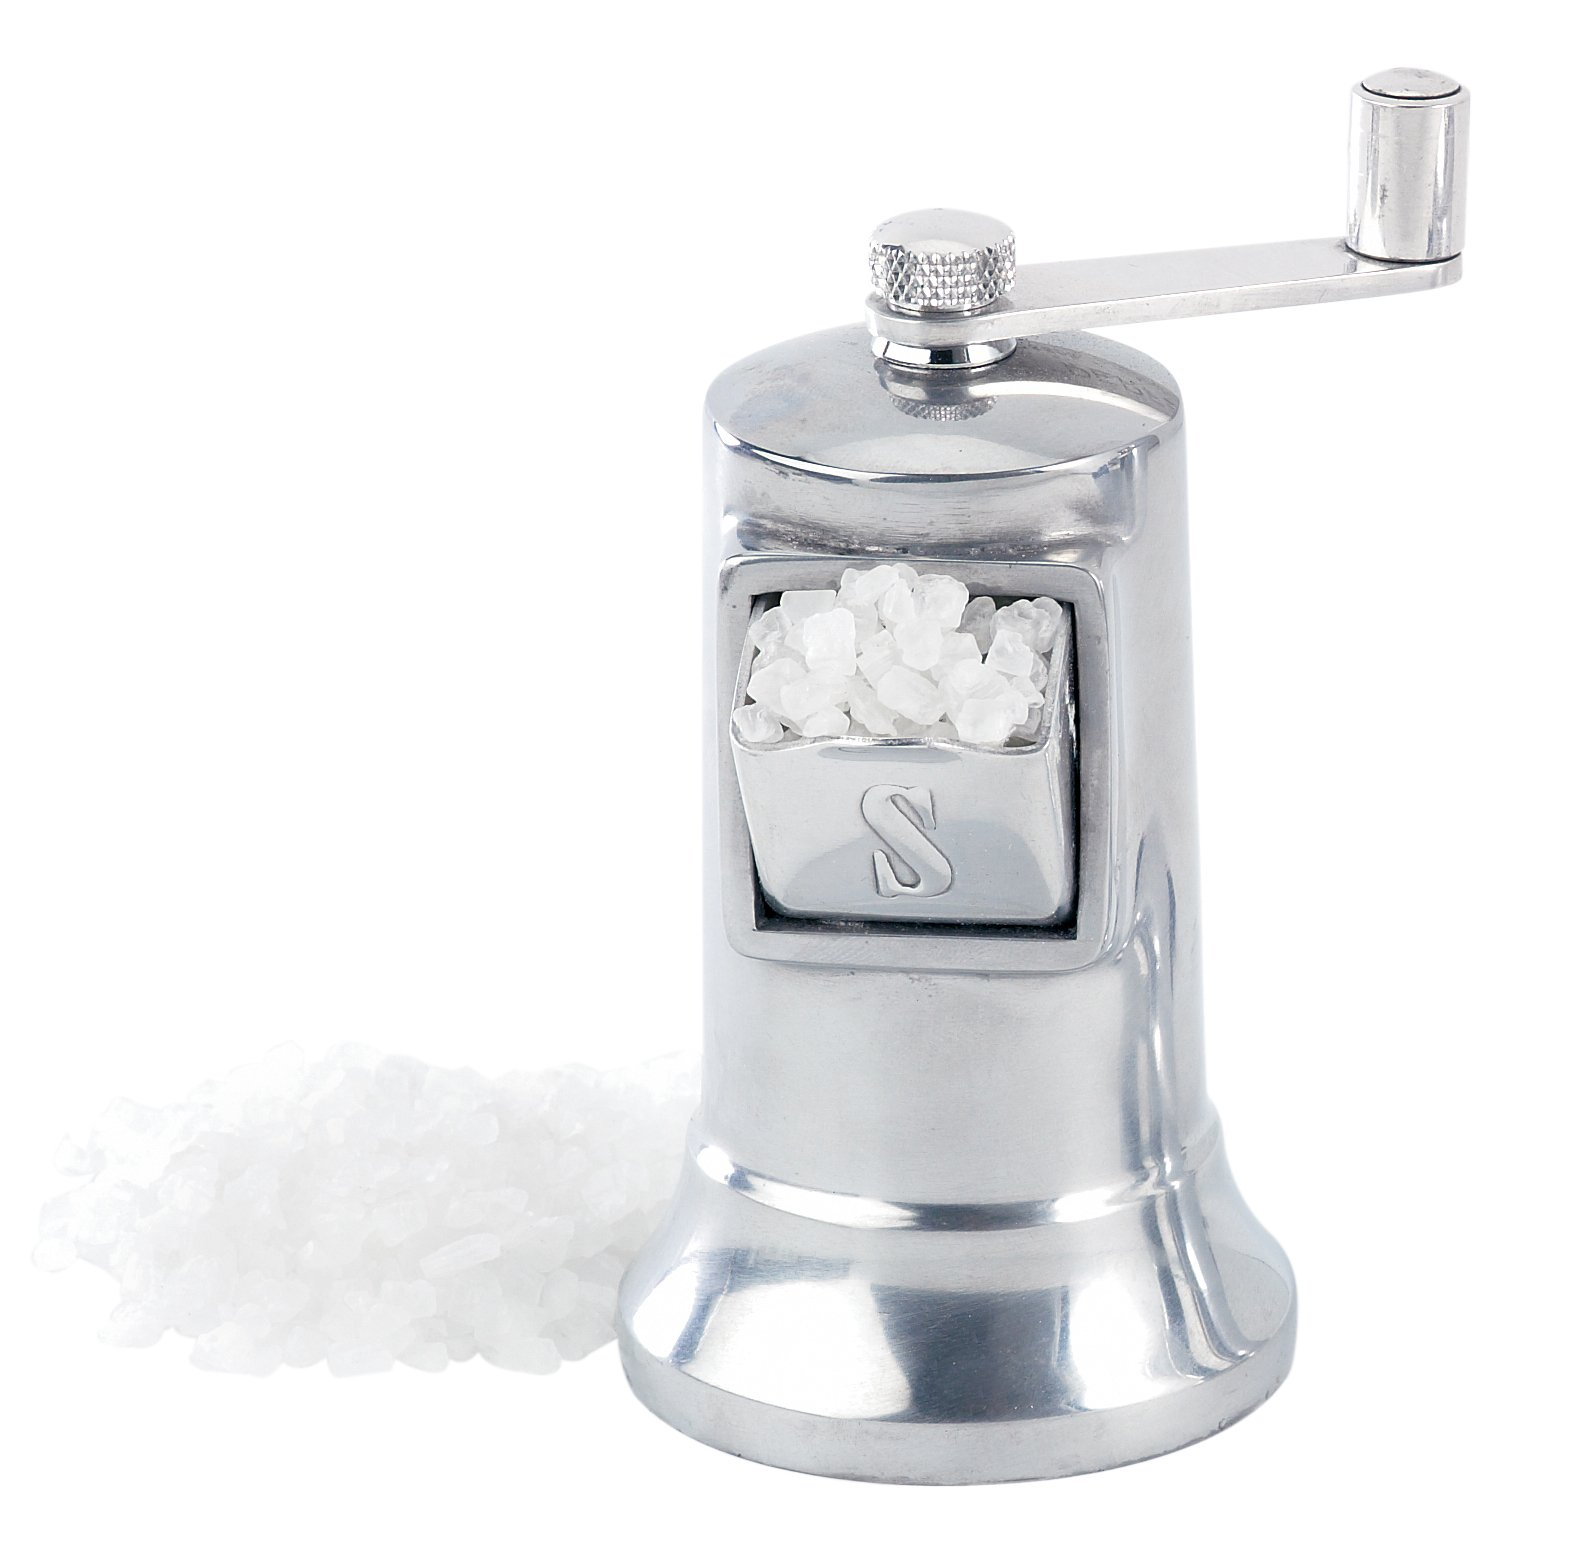 Perfex Adjustable Salt Grinder Mill, Made in France, Stainless Steel Mechanism, 4.5-Inches by Perfex